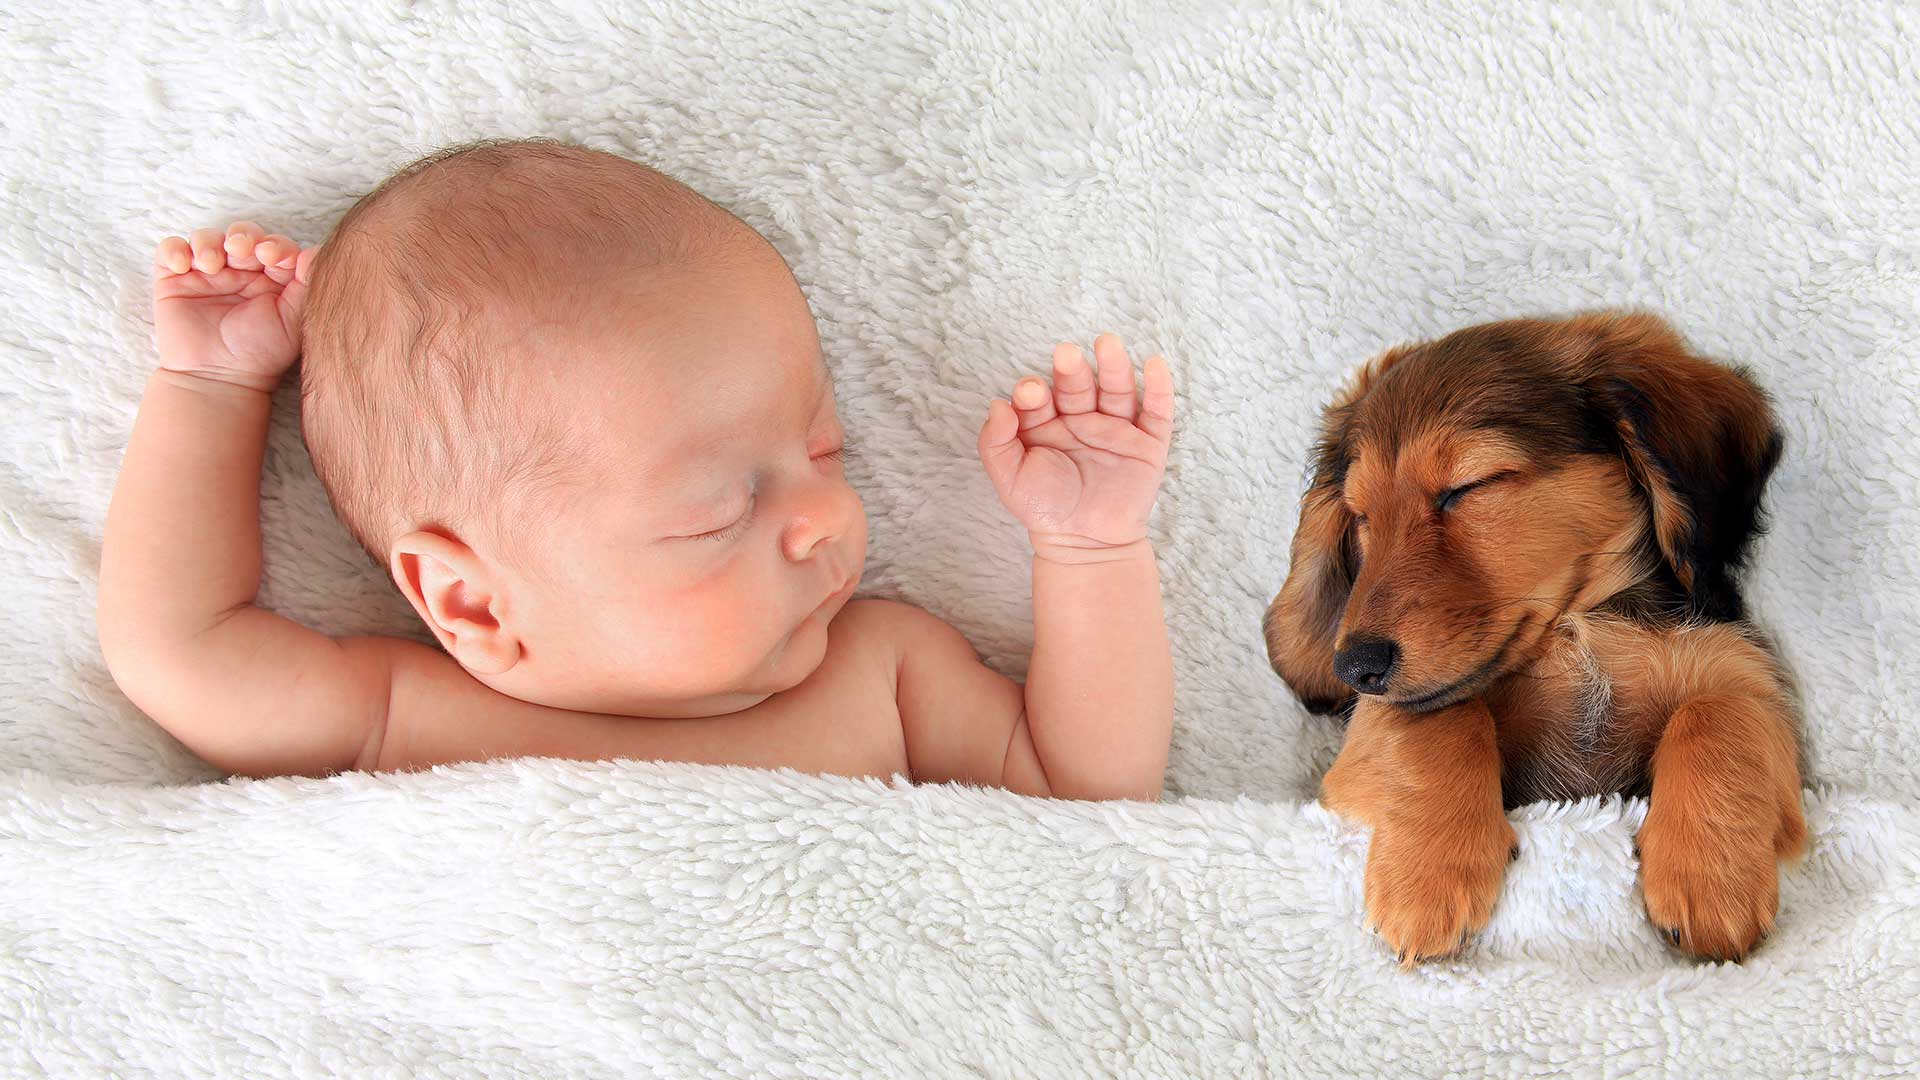 WATCH: Baby and Dog Show Love for One Another